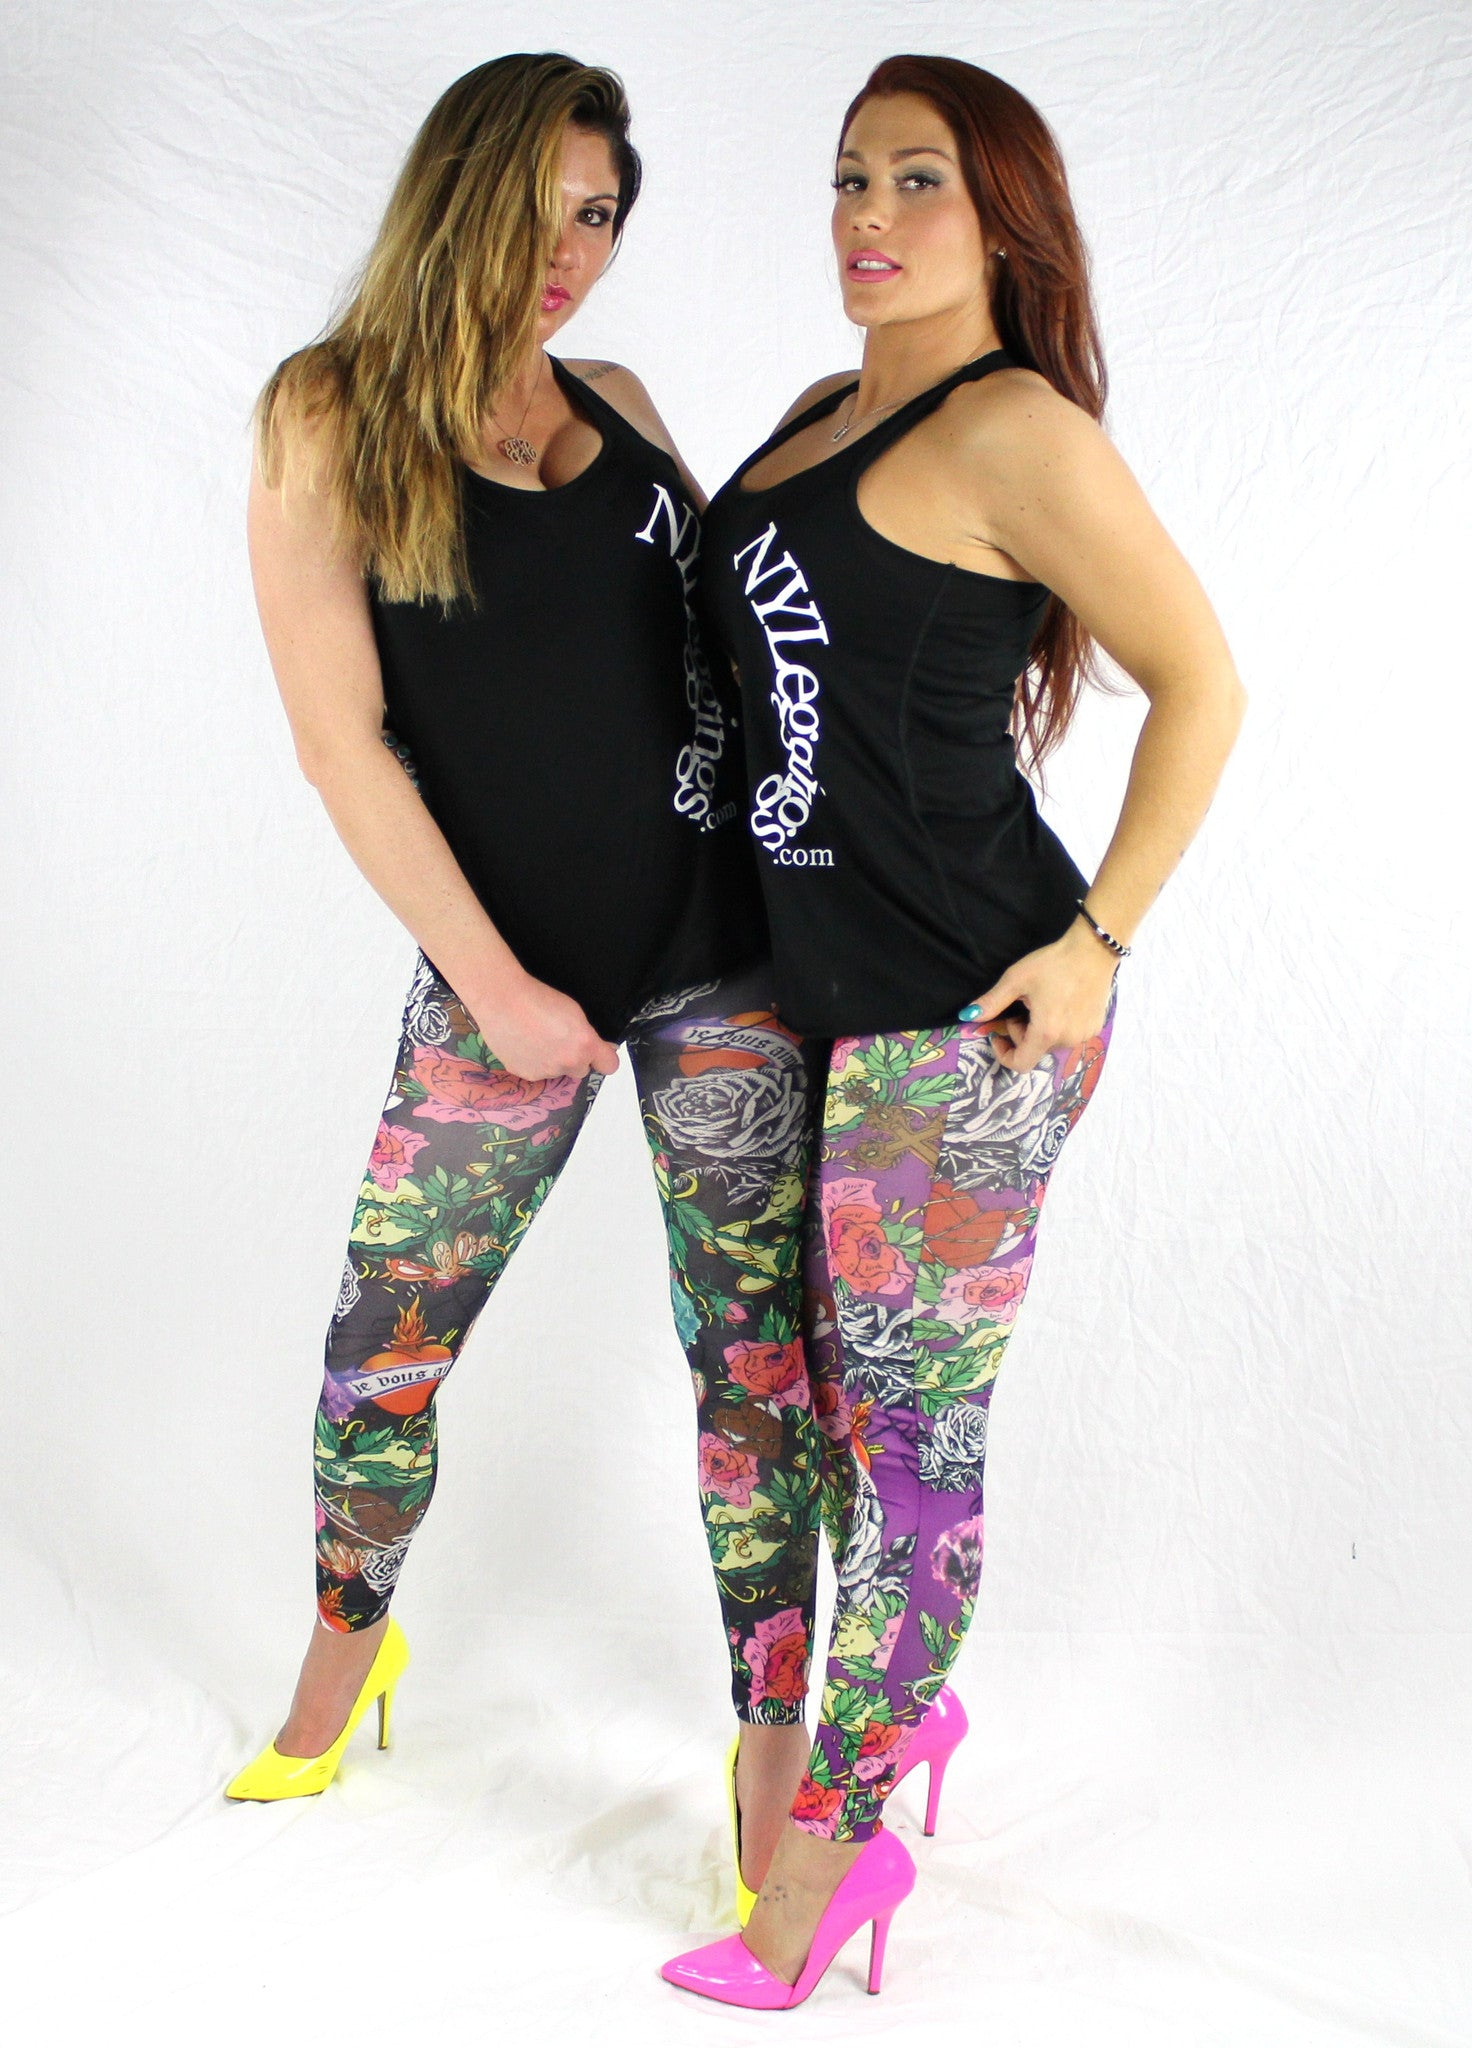 PURPLE ROSES - NYLeggings.com  - 5